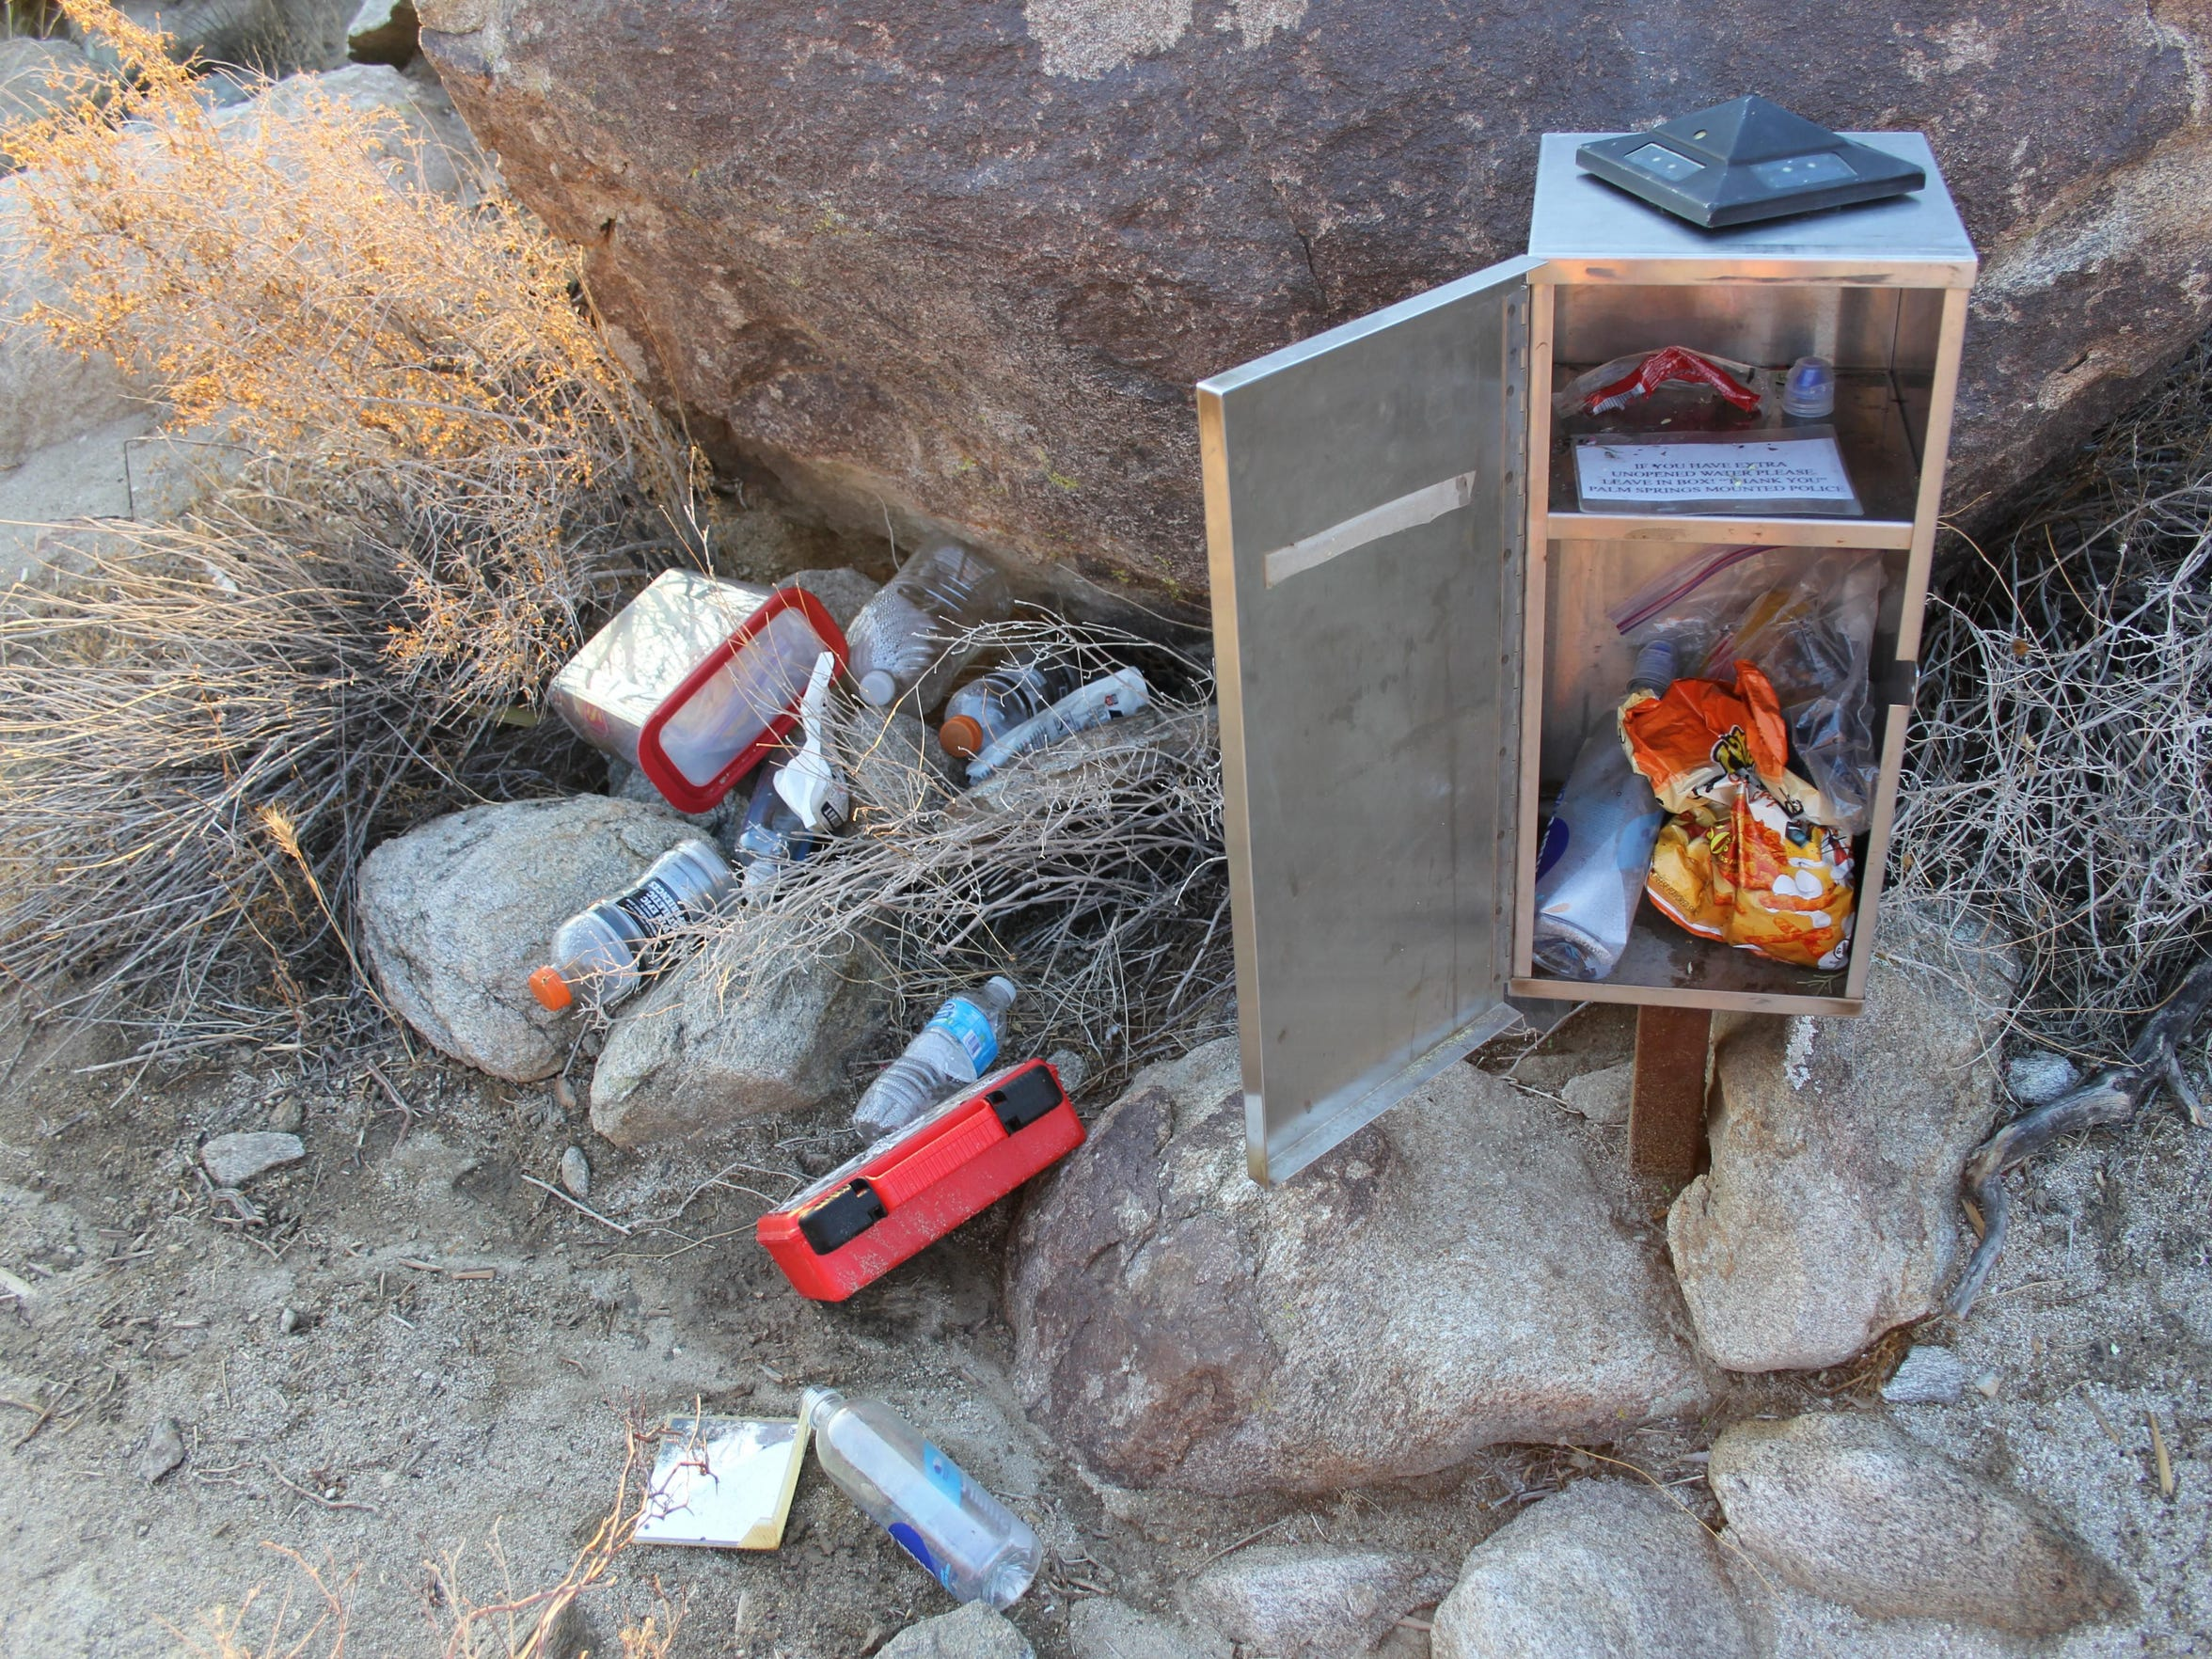 The rescue boxes on the Skyline Trail have become nearly useless after being raided on a weekly basis by hikers not in serious trouble.